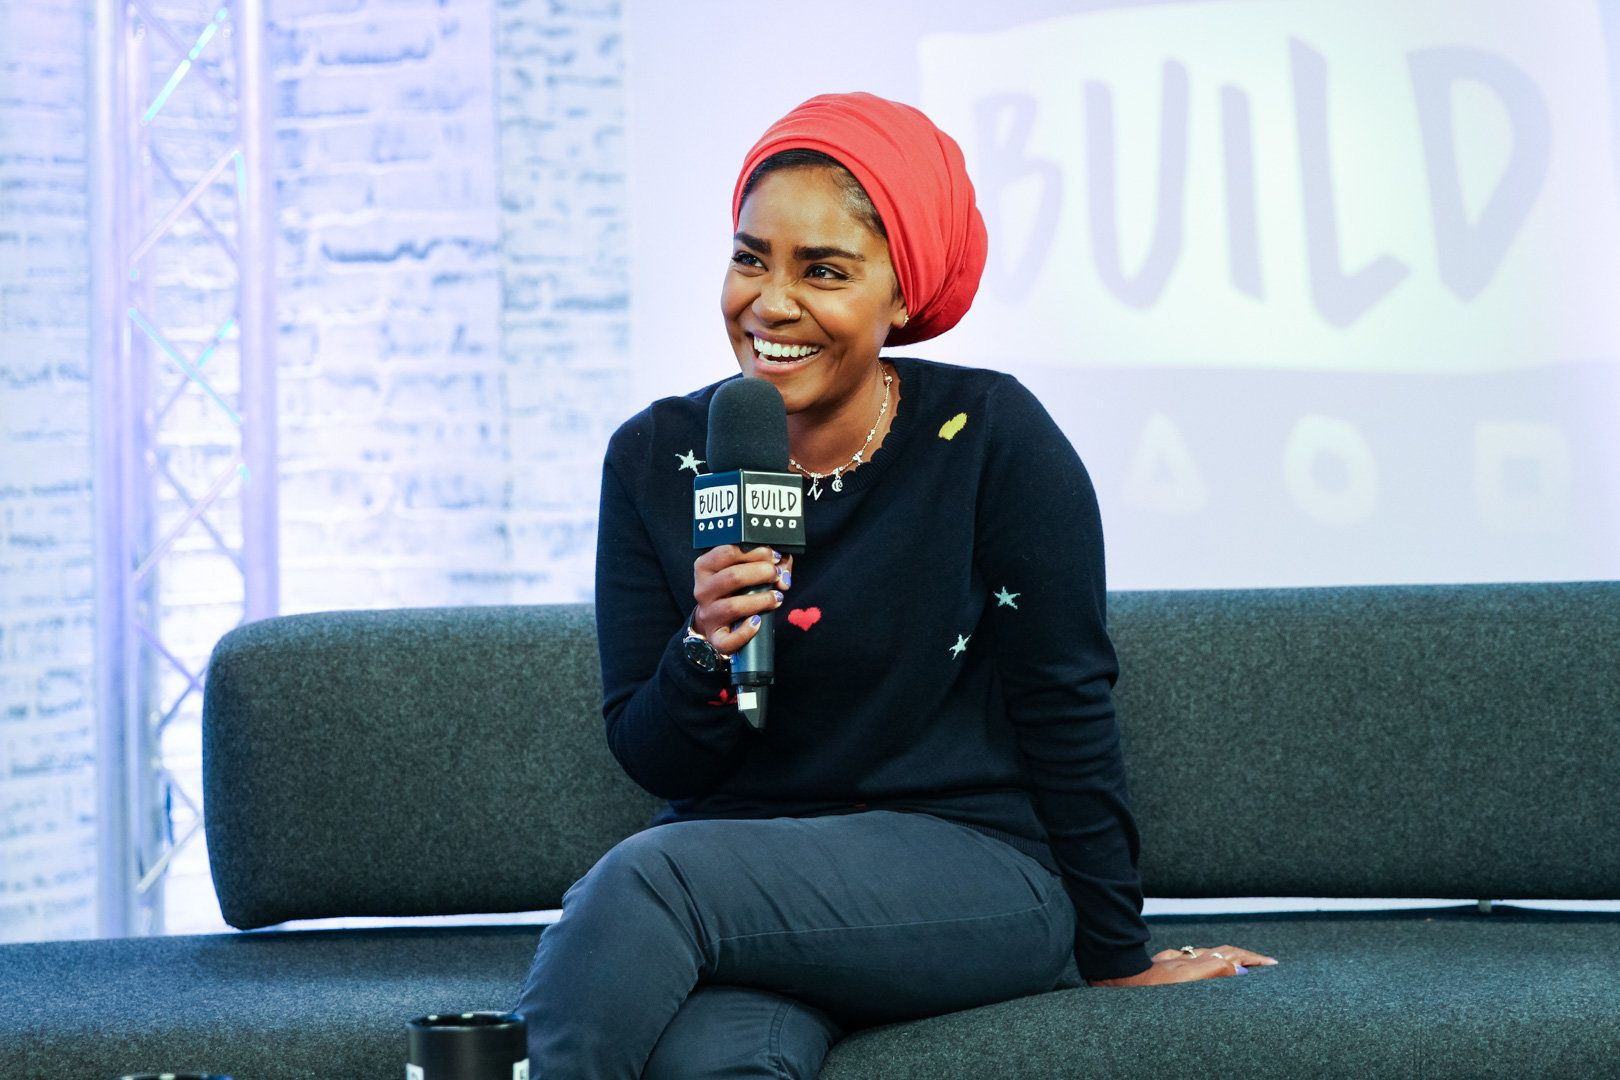 BAKE OFF: Nadiya Hussain Has Put Herself Forward For 'I'm A Celebrity': 'Give Me A Jug Of Blitzed Up